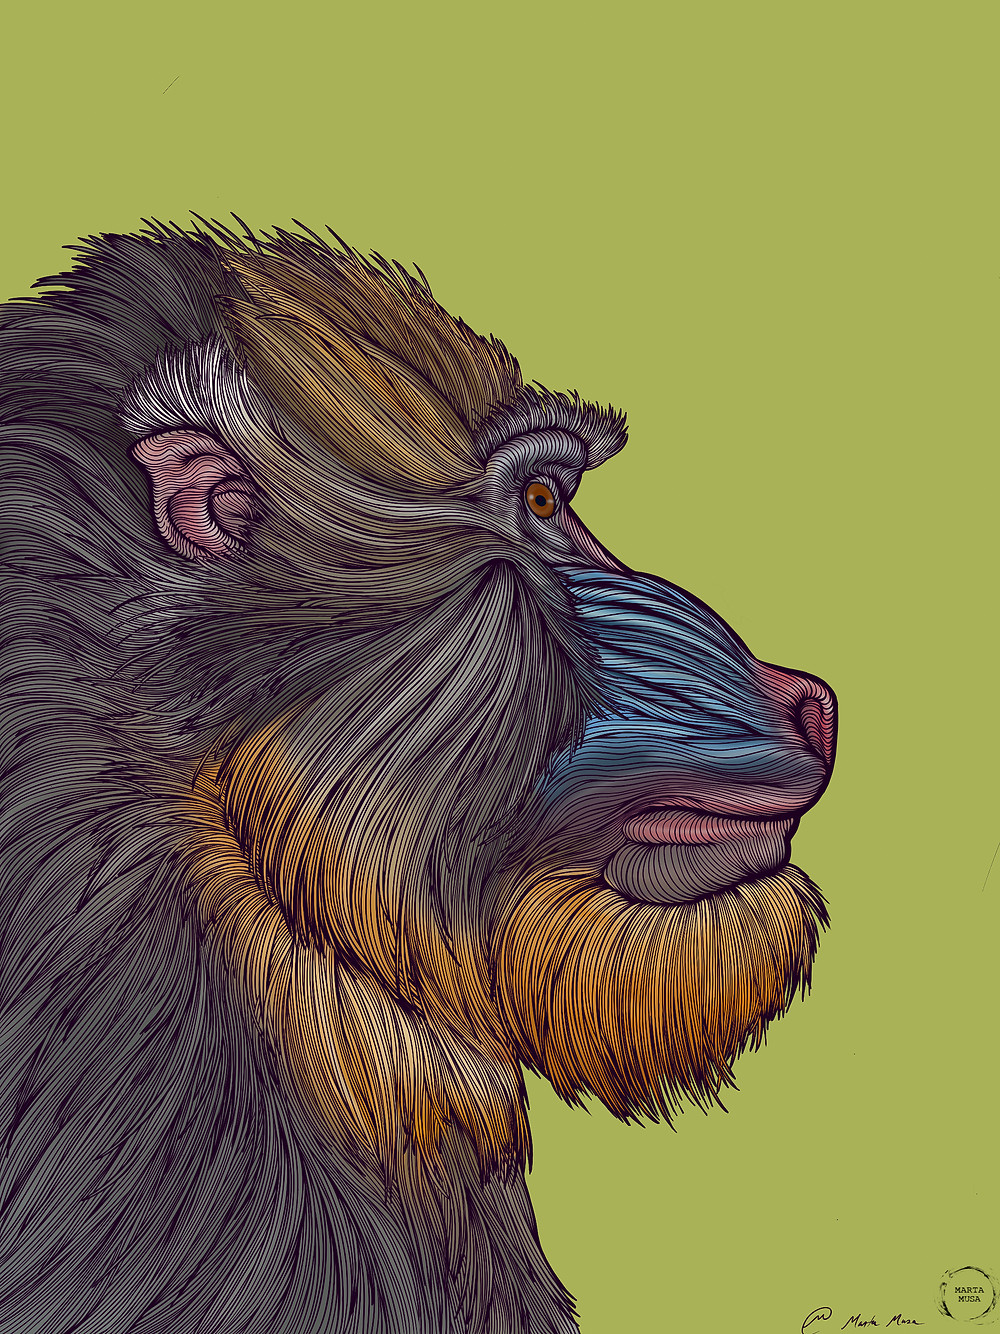 Contour drawing of a Mandrill in profile drawn against a lime green background